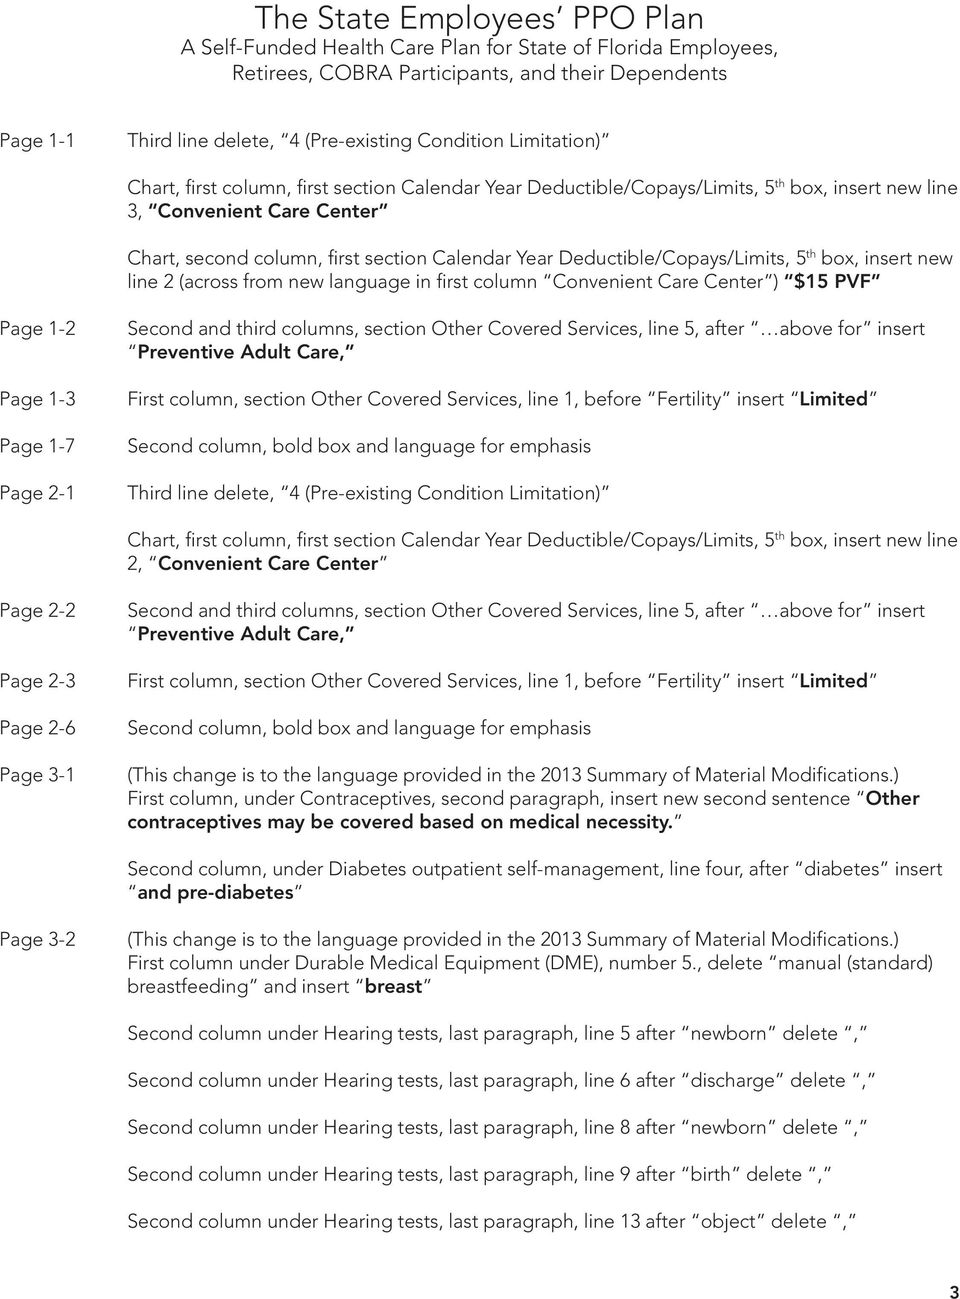 Page 2-1 Second and third columns, section Other Covered Services, line 5, after above for insert Preventive Adult Care, First column, section Other Covered Services, line 1, before Fertility insert